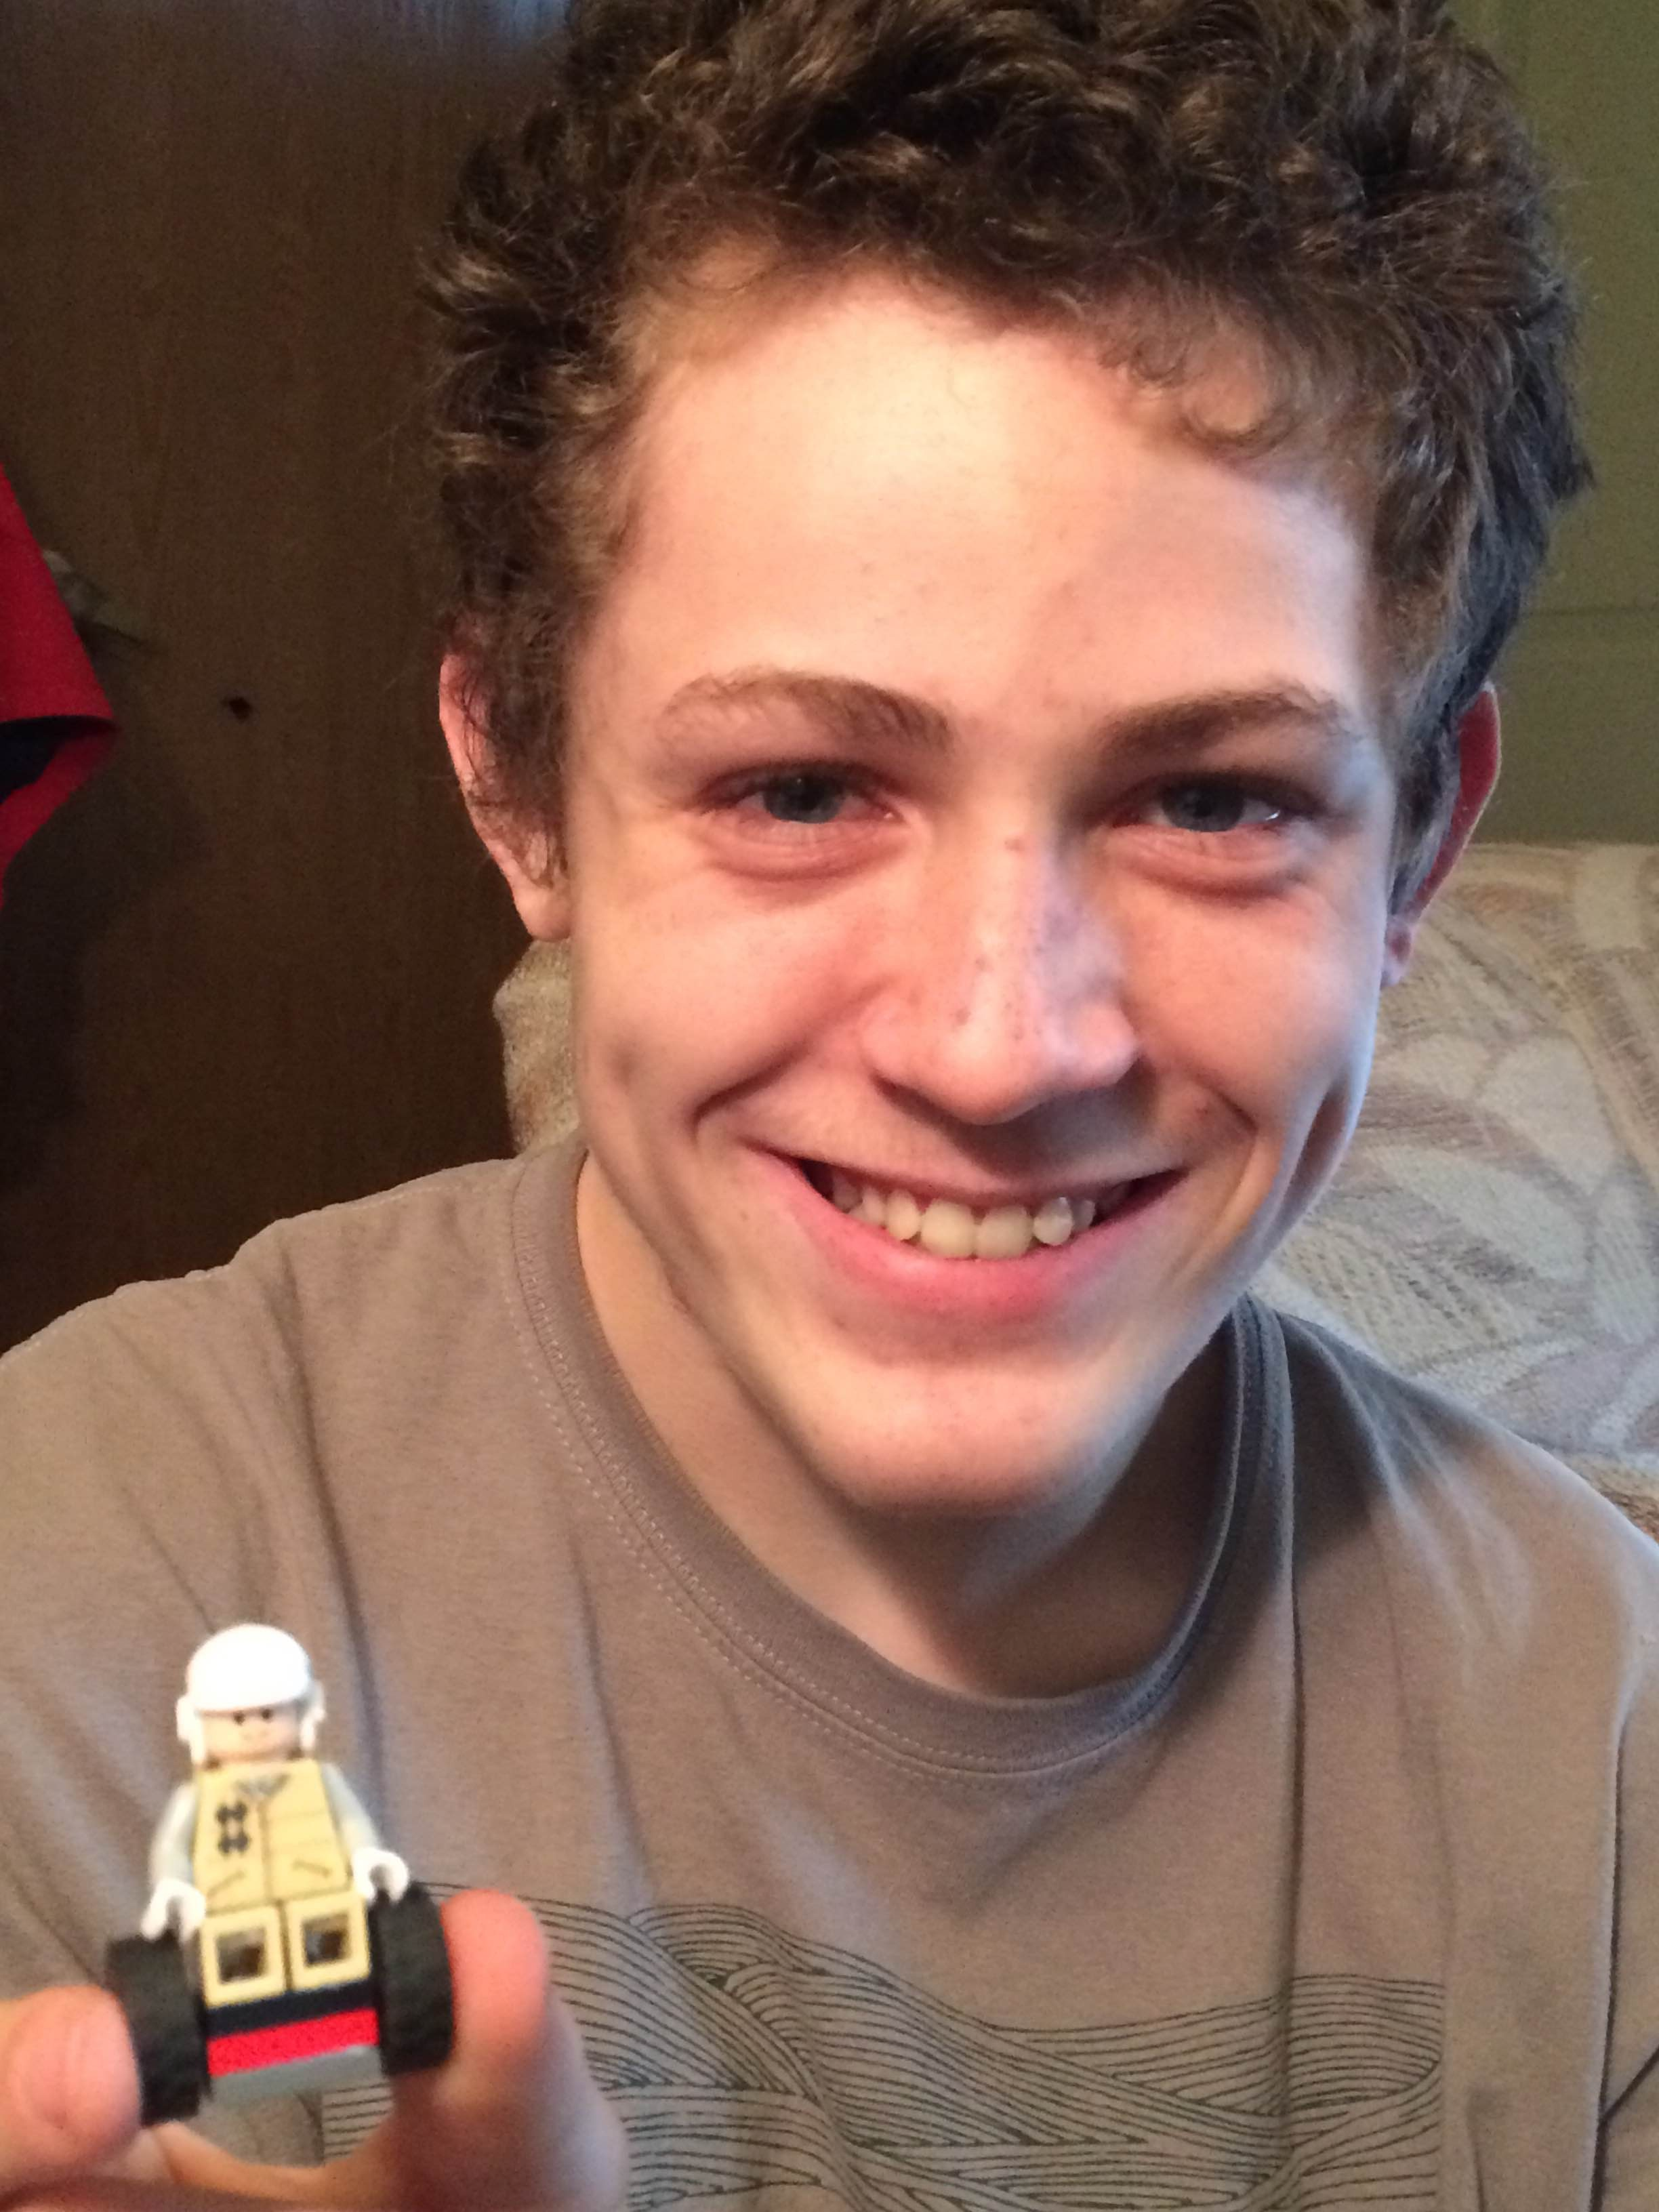 teen with lego he made